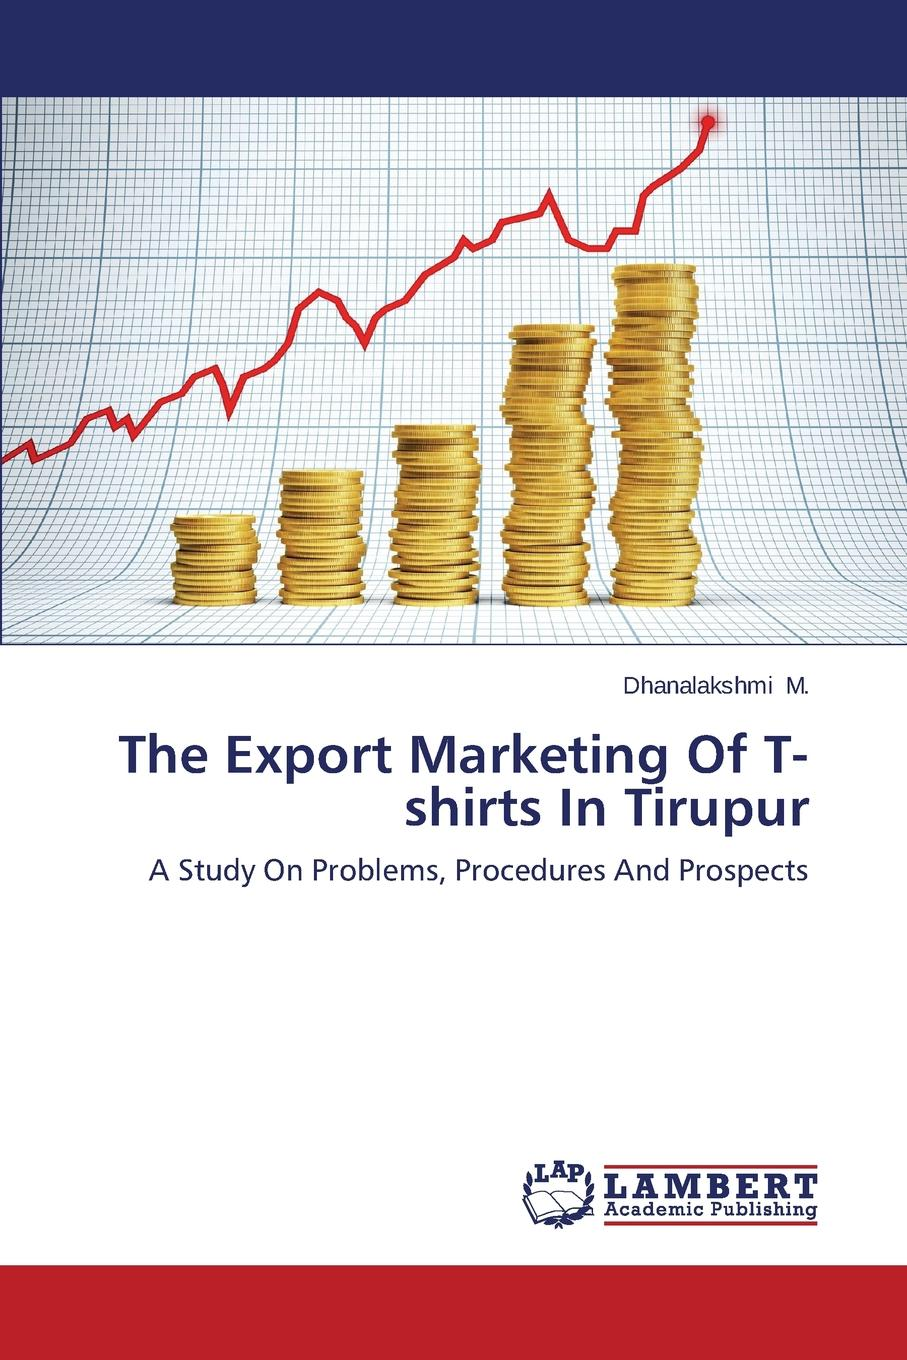 M. Dhanalakshmi The Export Marketing of T-Shirts in Tirupur indian agricultural export in the liberalized era